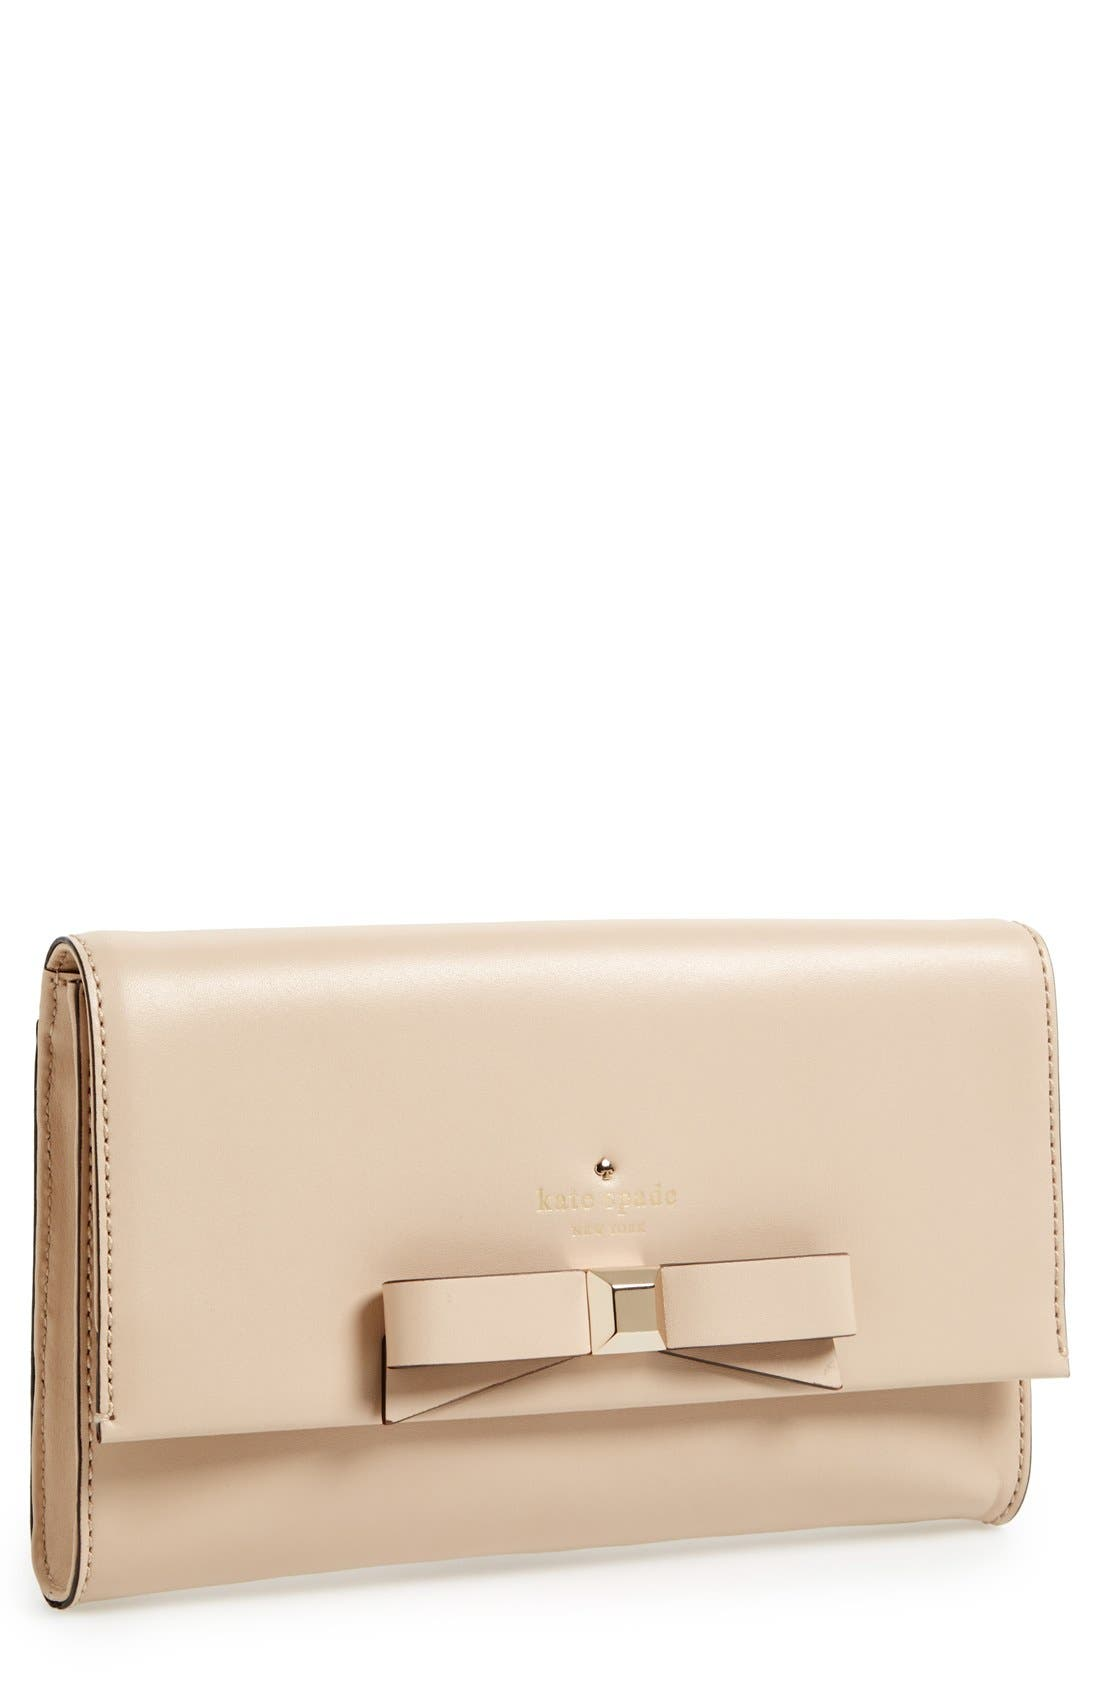 Alternate Image 1 Selected - kate spade new york 'holly street - remi' clutch